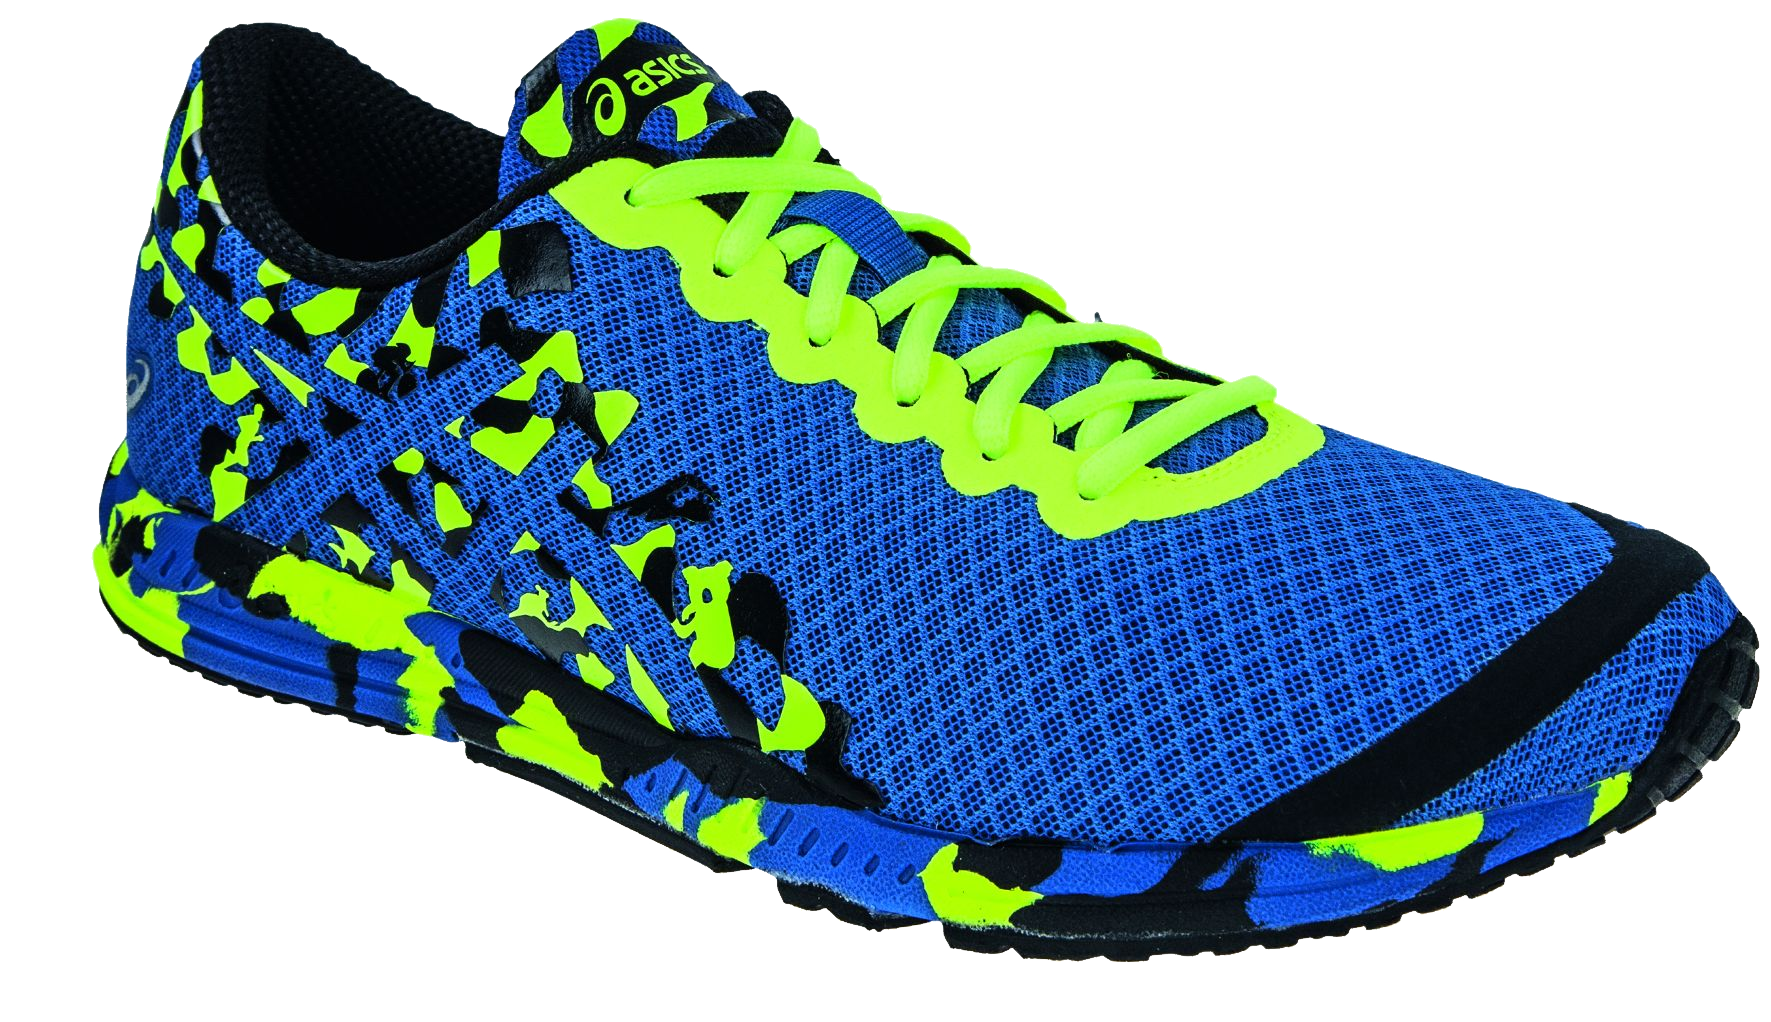 Running shoes PNG image - Shoes PNG